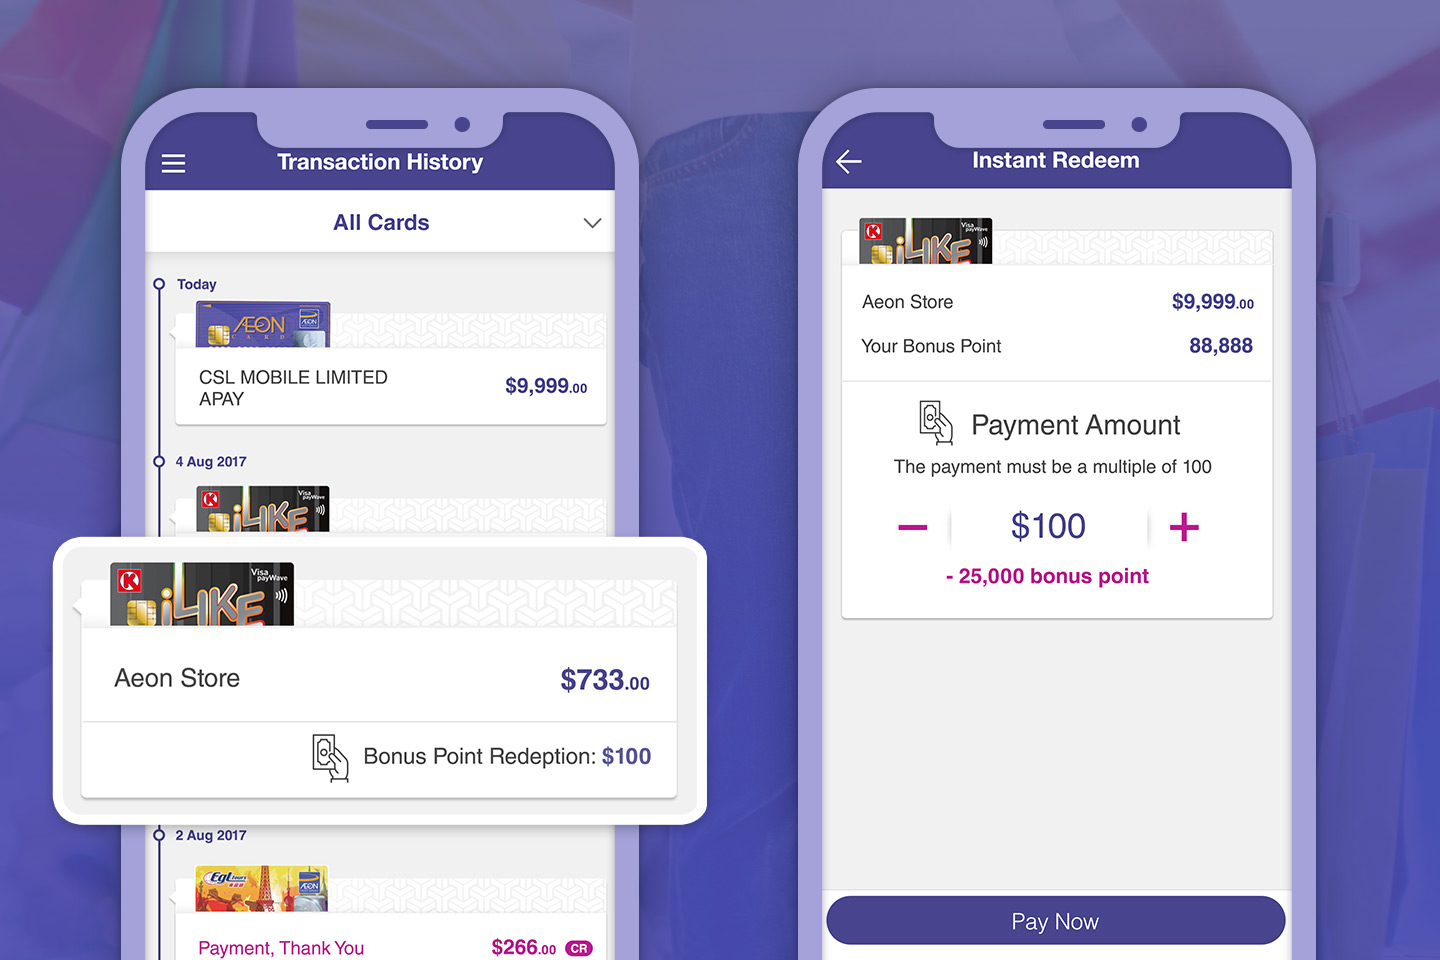 Gain bonus points for every purchase with AEON App